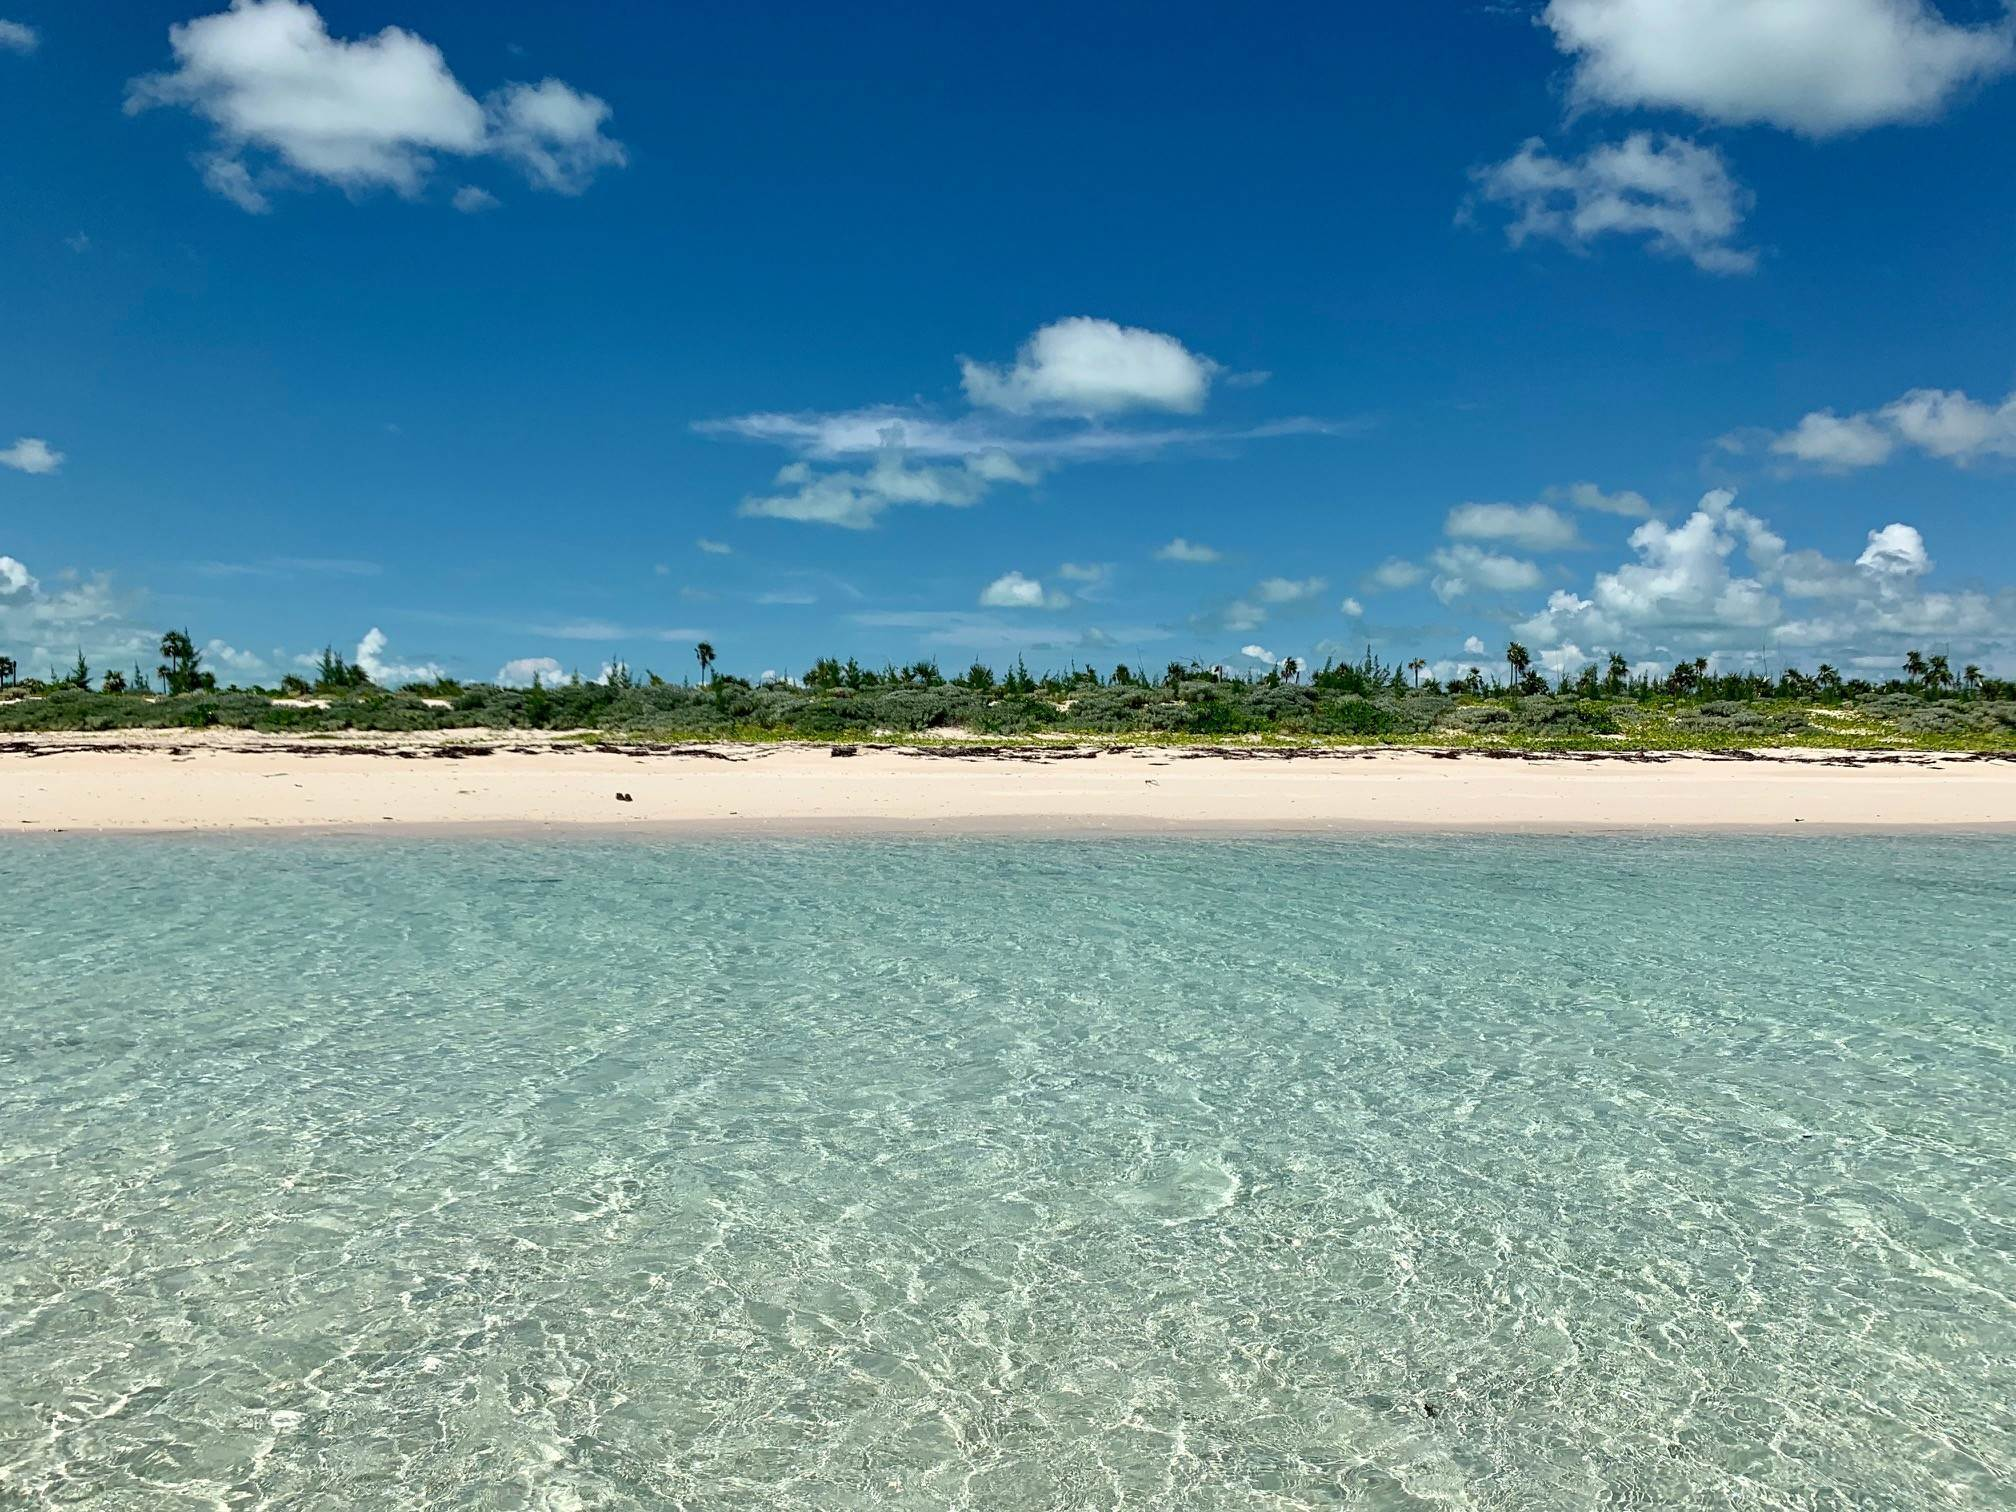 5. Land for Sale at Lot 29 Chub Cay - MLS 38796 Chub Cay, Berry Islands, Bahamas